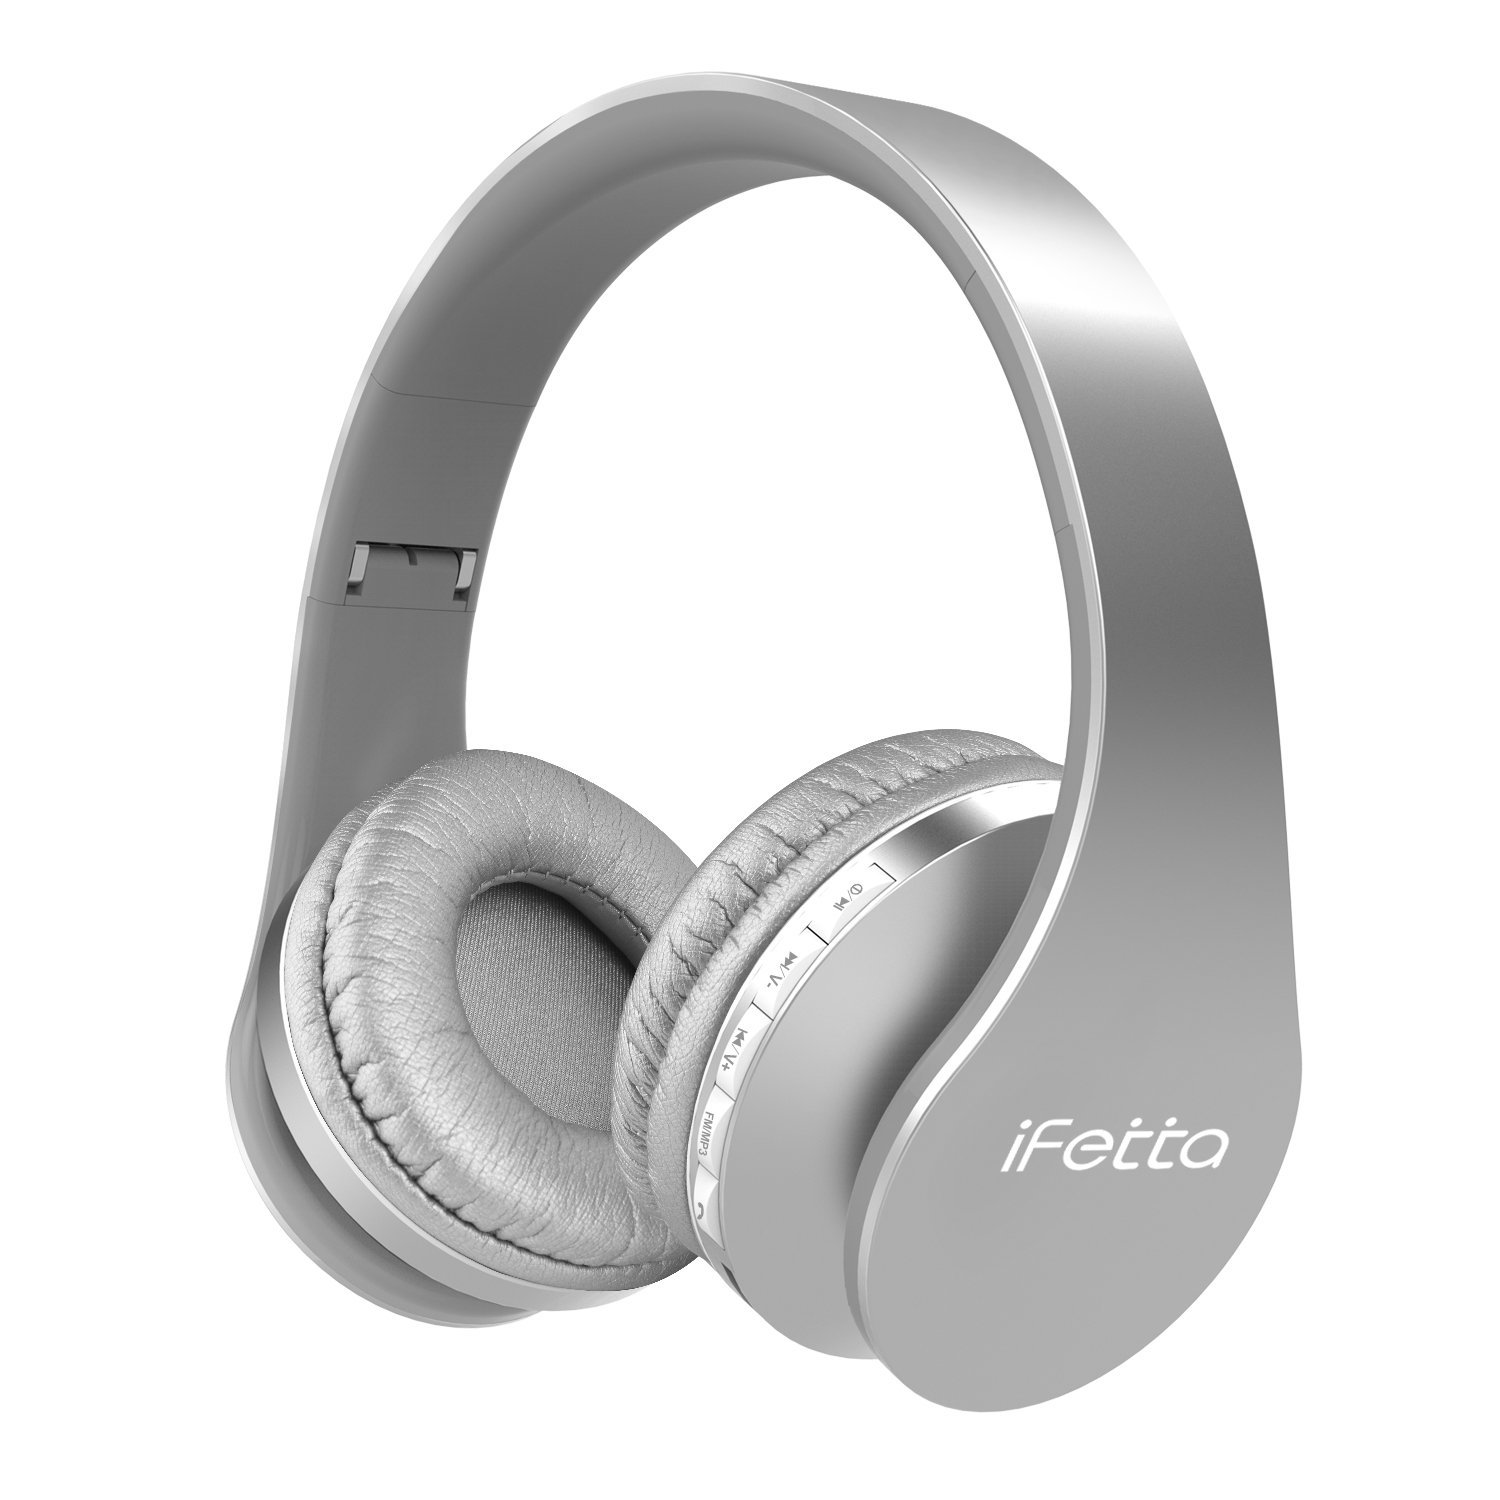 Ifecco Bluetooth Over Ear Headset Wirless Ohrpolster Kopfhörer